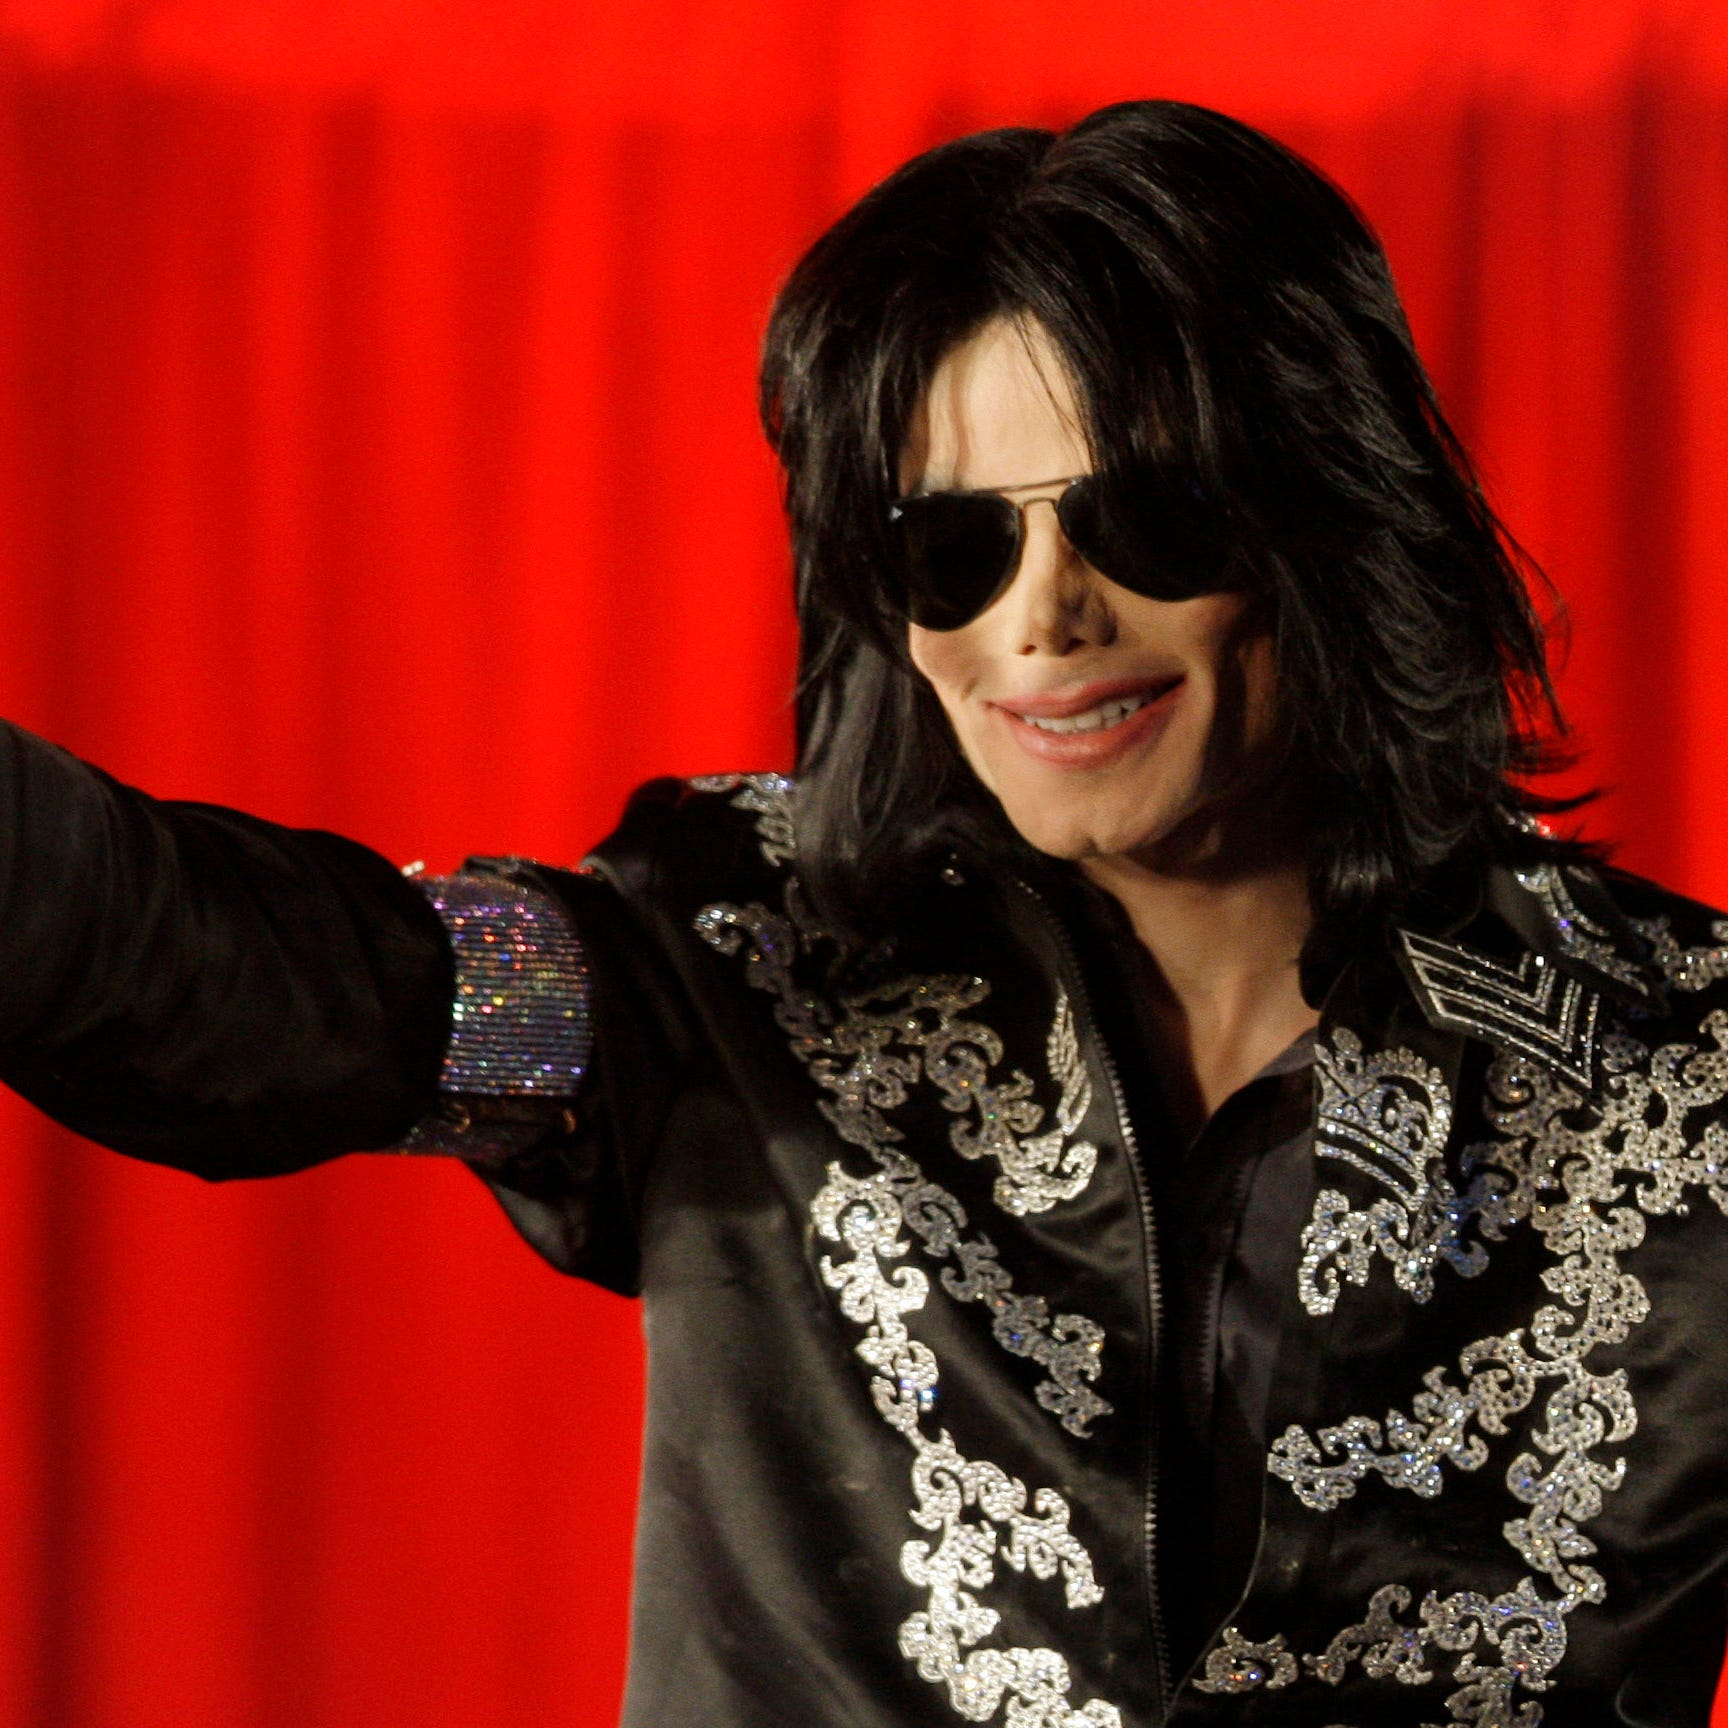 Michael Jackson's music banned from 23 radio stations after 'Neverland' documentary airs